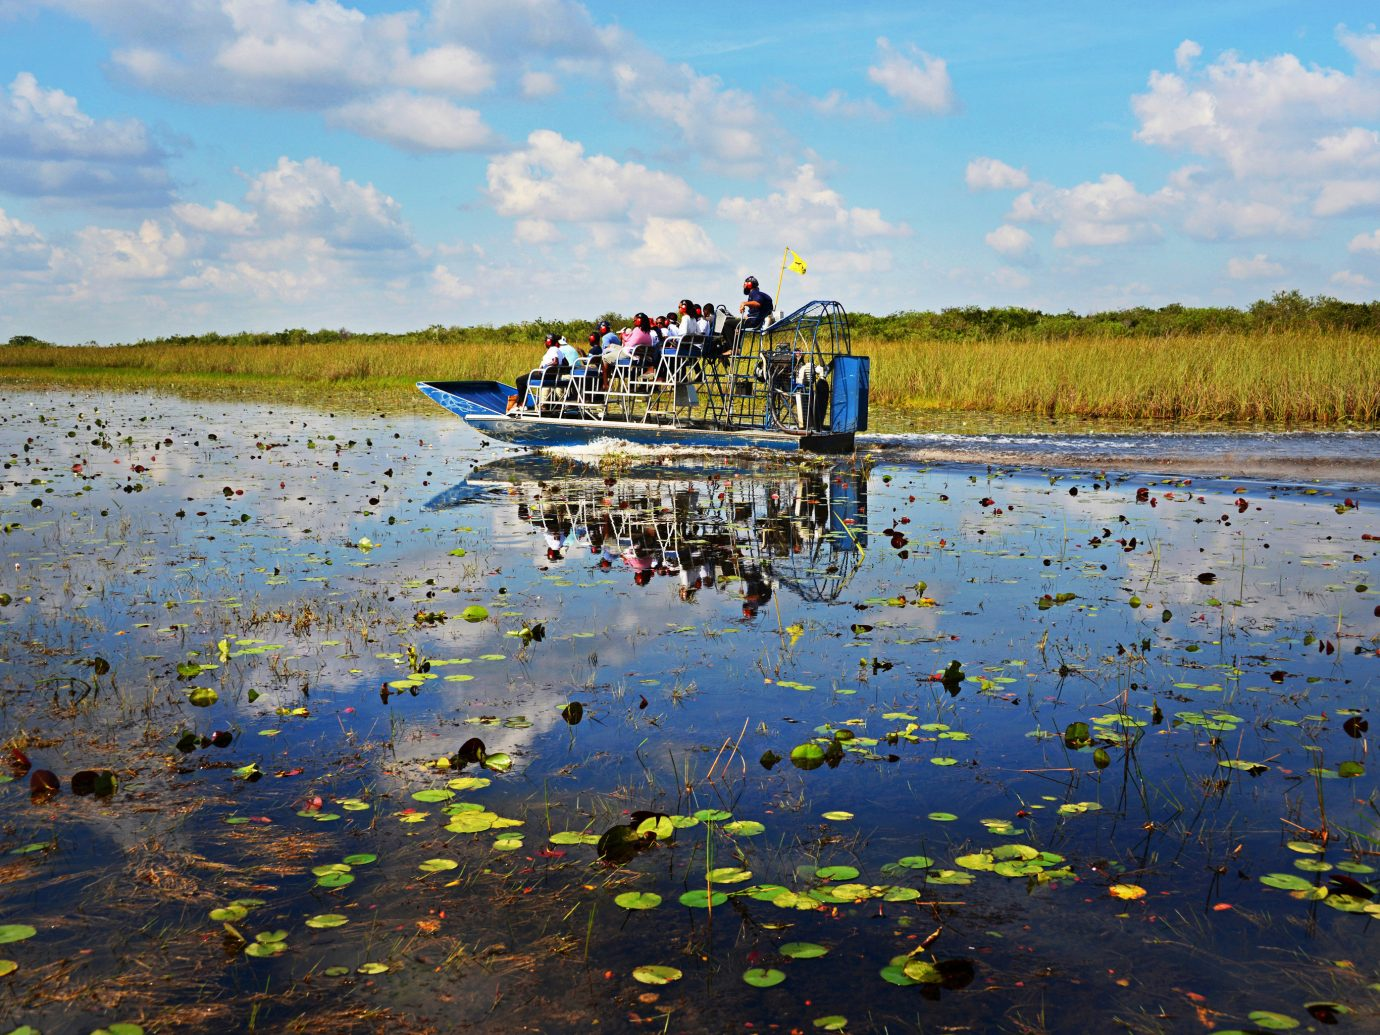 Family Travel National Parks Trip Ideas water grass sky outdoor Nature habitat shore reflection body of water wetland natural environment Sea pond River marsh Lake Coast mudflat agriculture waterway bay